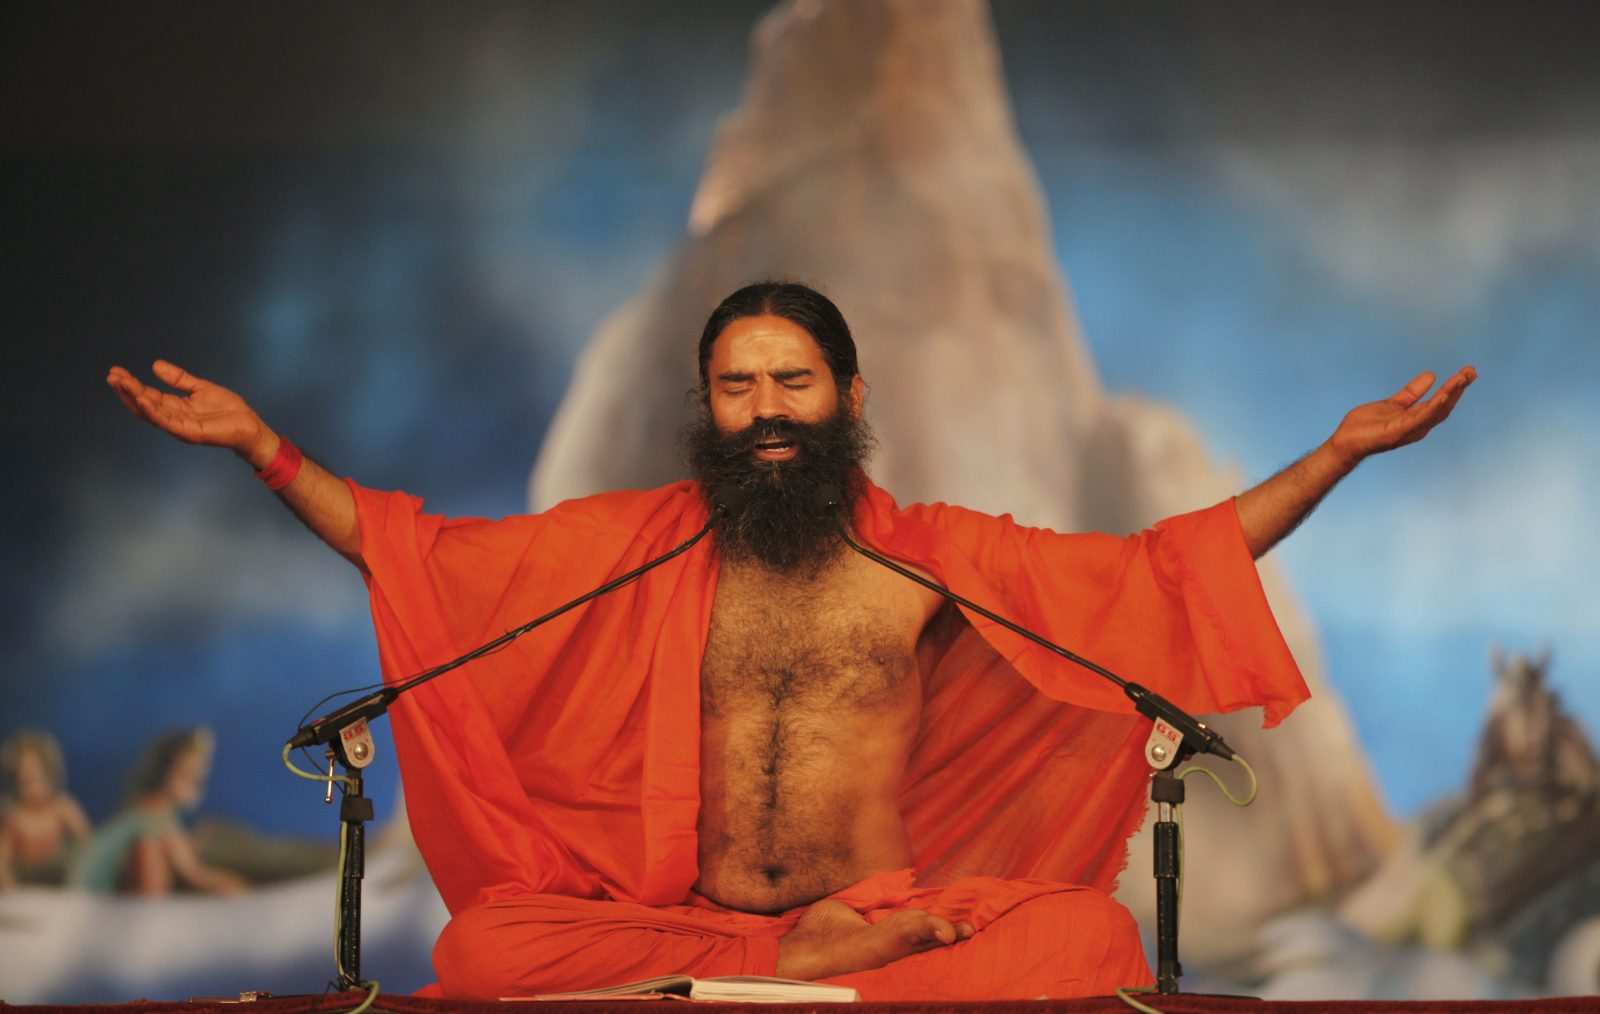 Indian yoga guru Baba Ramdev performs yoga at Sangam, the confluence of rivers Ganges, Yamuna and mythical Saraswati during the Maha Kumbh festival in Allahabad, Monday, Feb. 4, 2013. Millions of Hindu pilgrims are expected to attend the Maha Kumbh festival, which is one of the world's largest religious gatherings that lasts 55 days and falls every 12 years.